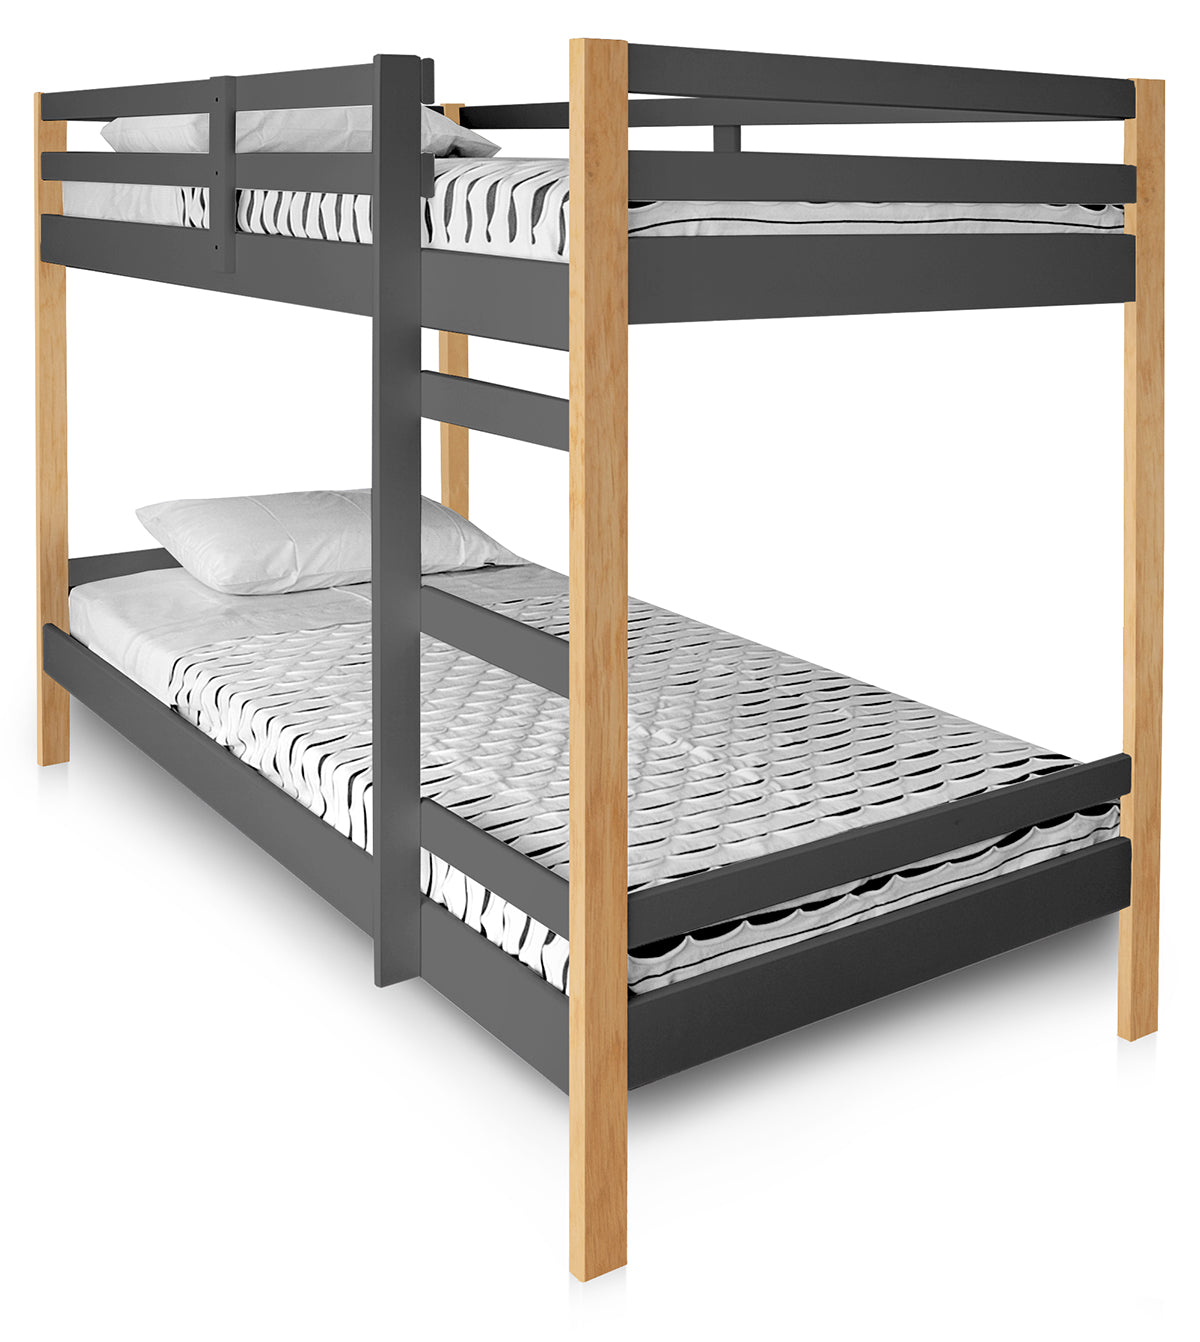 Letto Twin Bunk Bed - Stylish slumber is easily achieved with our Letto Twin Bunk Bed. Designed with durability in mind, it is made of pine wood and is available in 4 playful finishes.